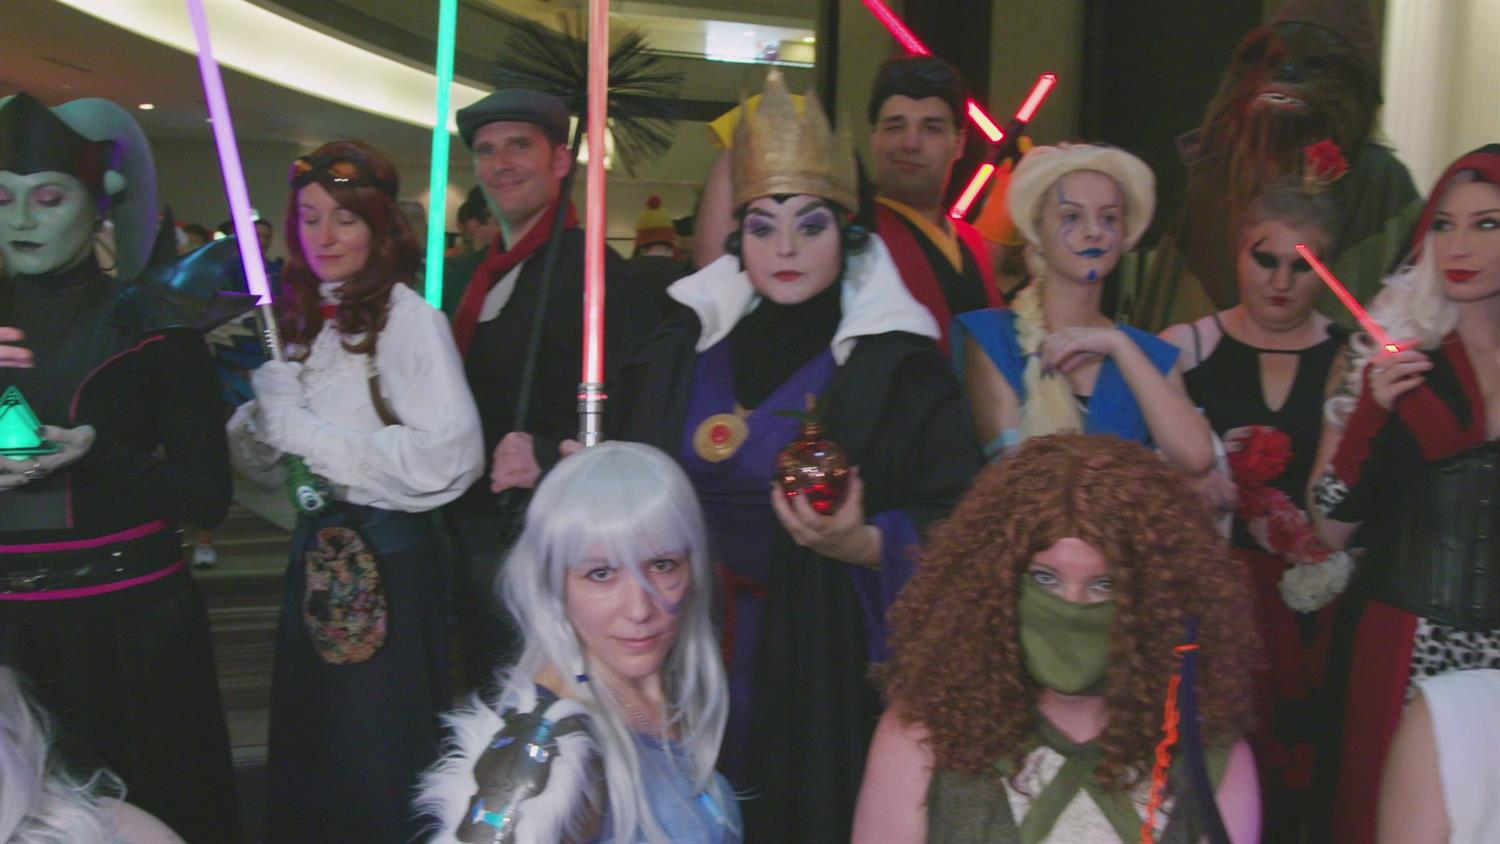 This Star Wars/Disney Cosplay Mashup Is Something You Must See